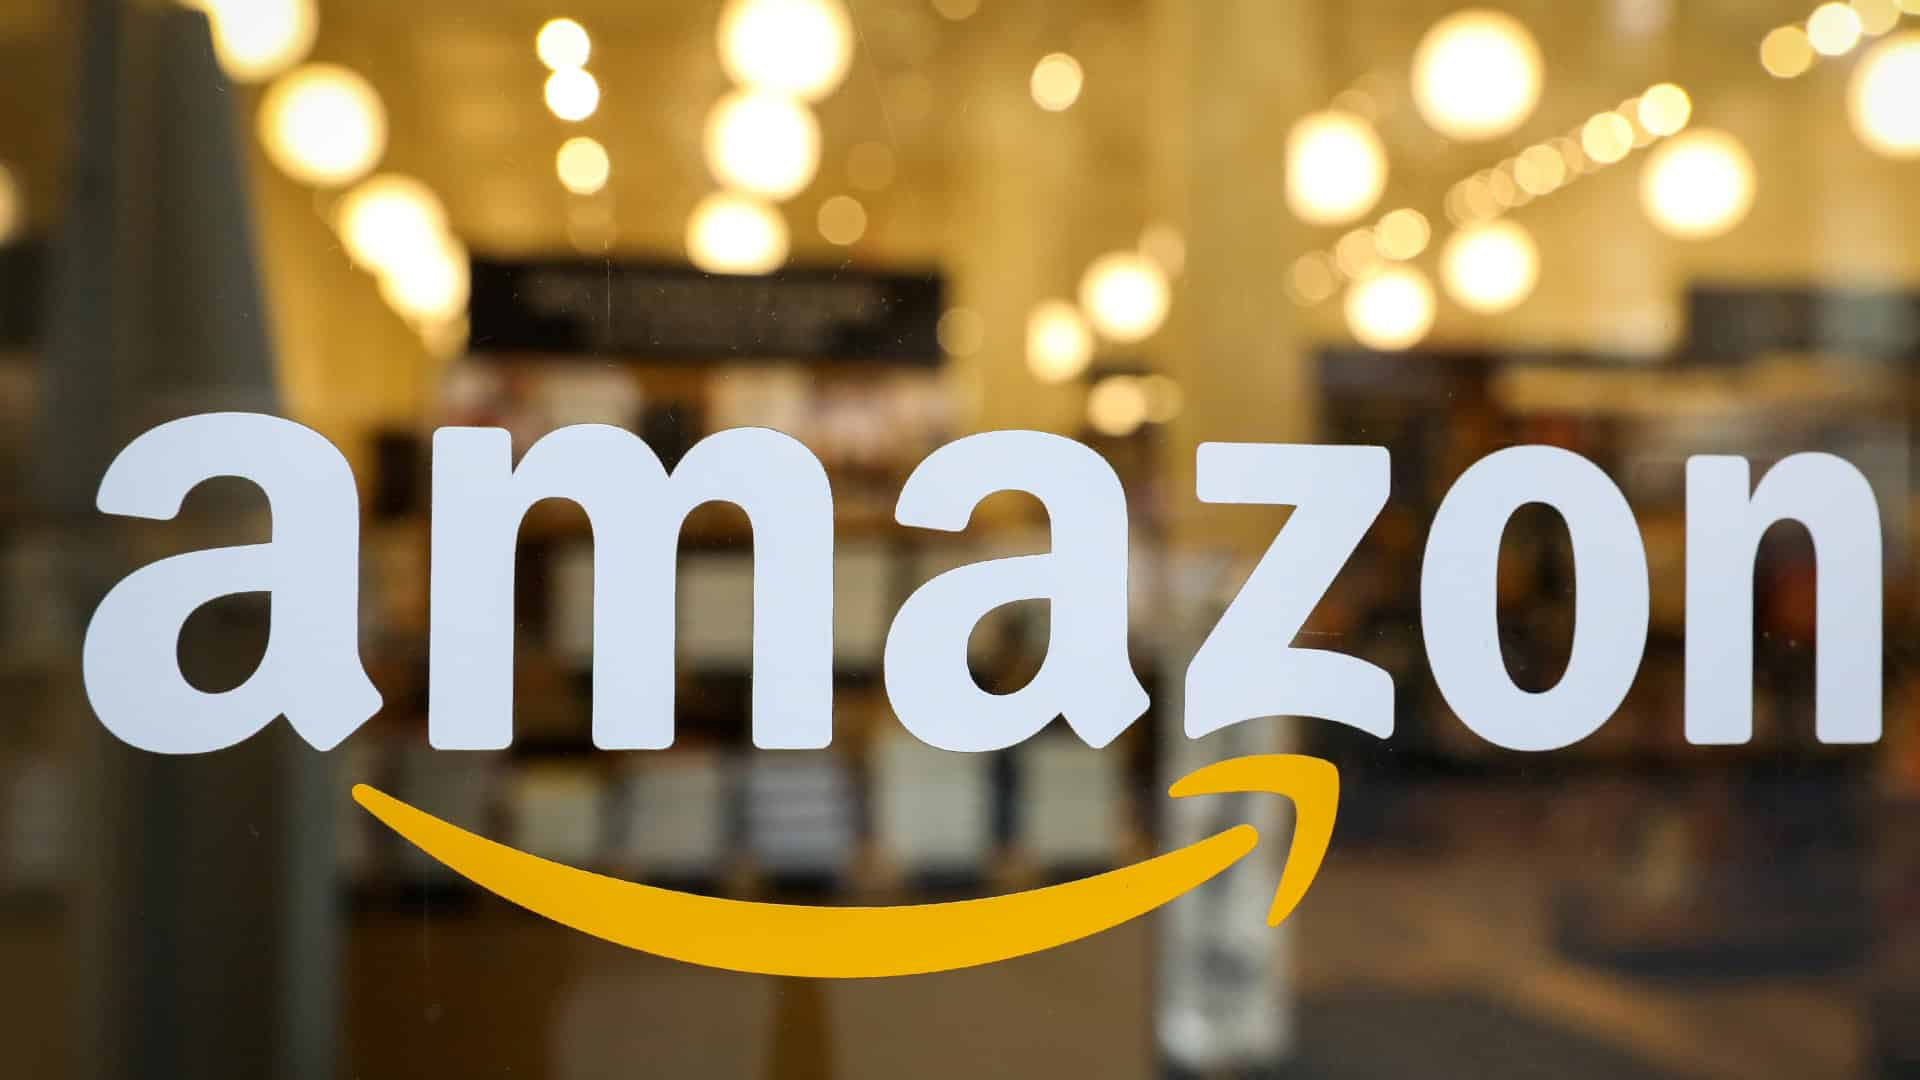 After Flipkart, Amazon moves Supreme Court to seek relief from CCI probe